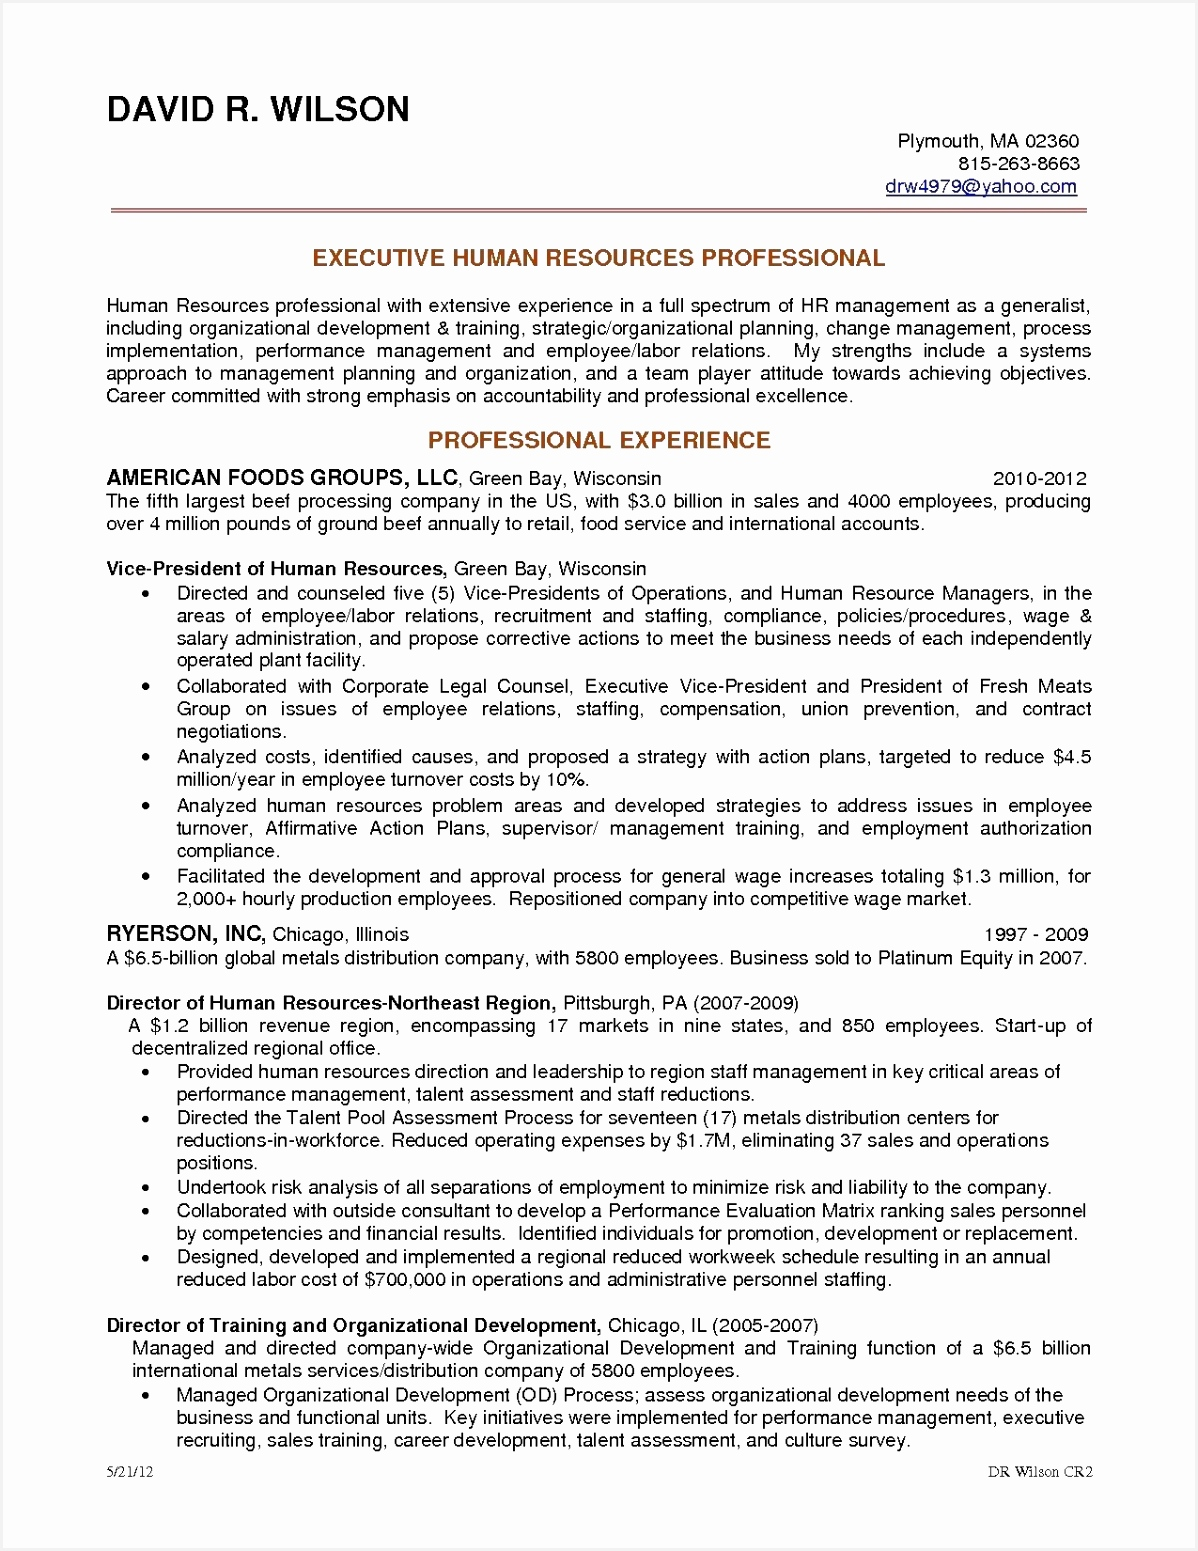 Military to Civilian Resume Elegant Infantry Resume Examples Awesome American Resume Sample New Student 23 15511198tcARb